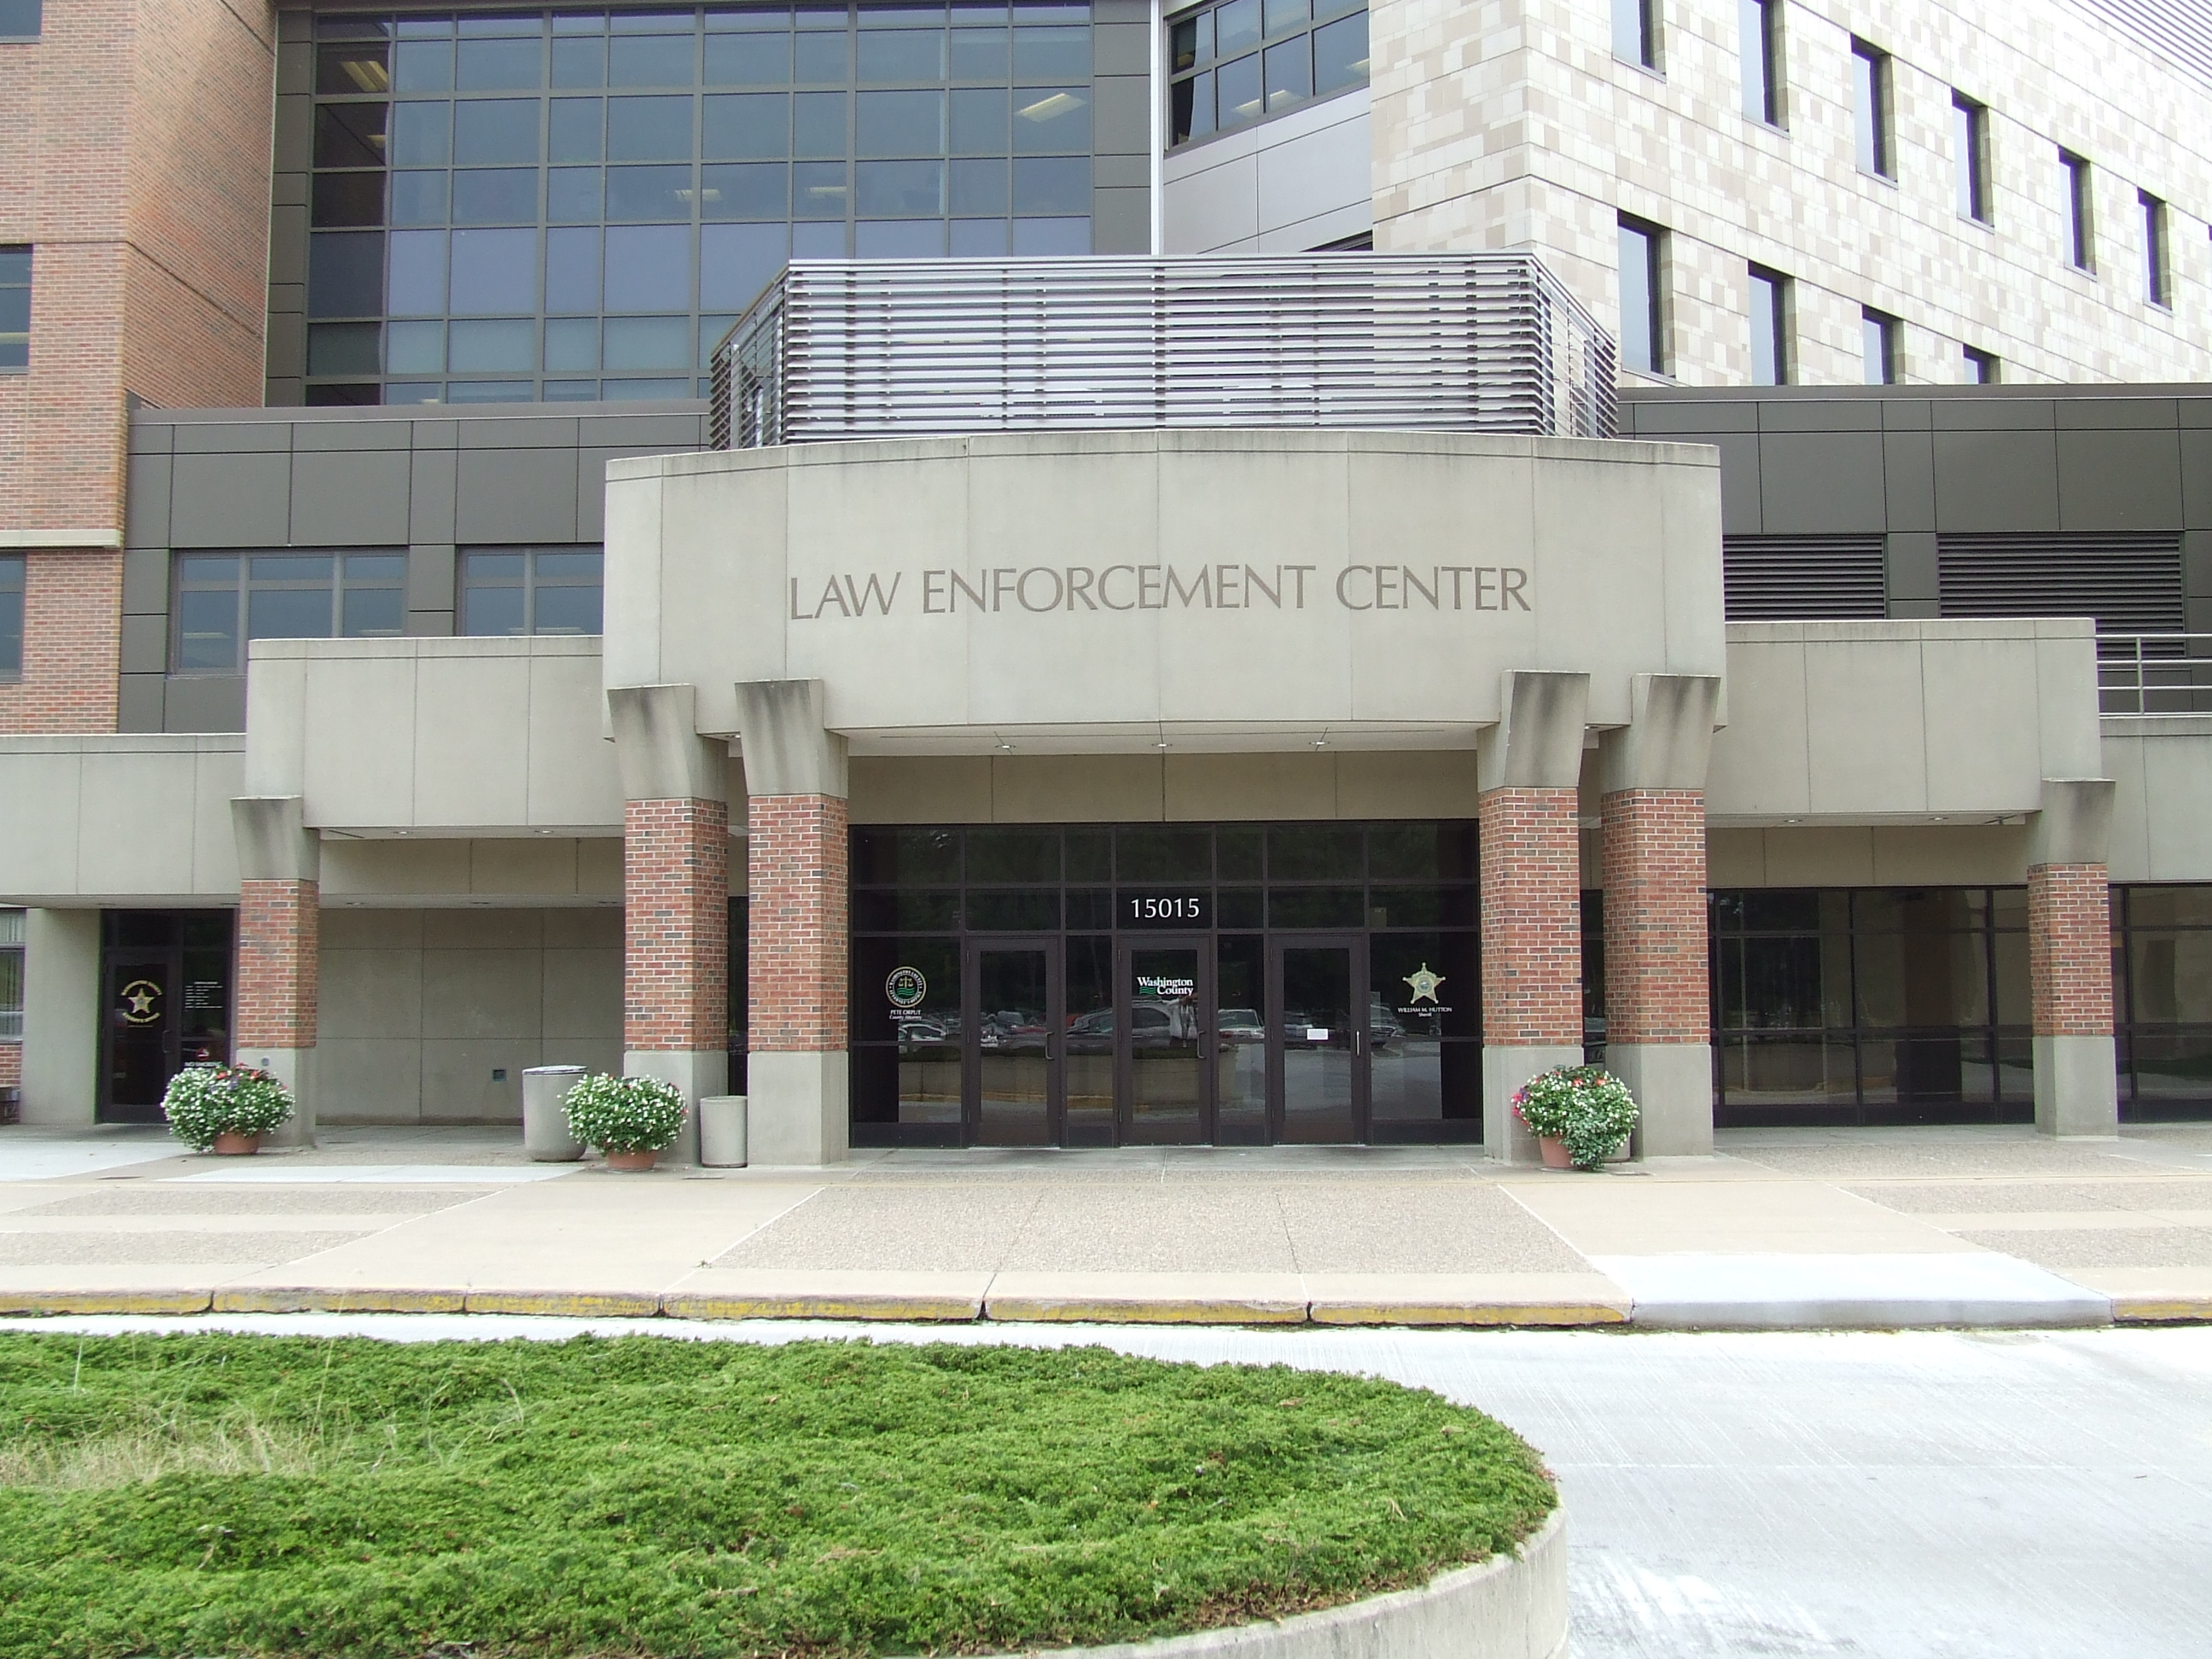 Law Enforcement Center Entrance